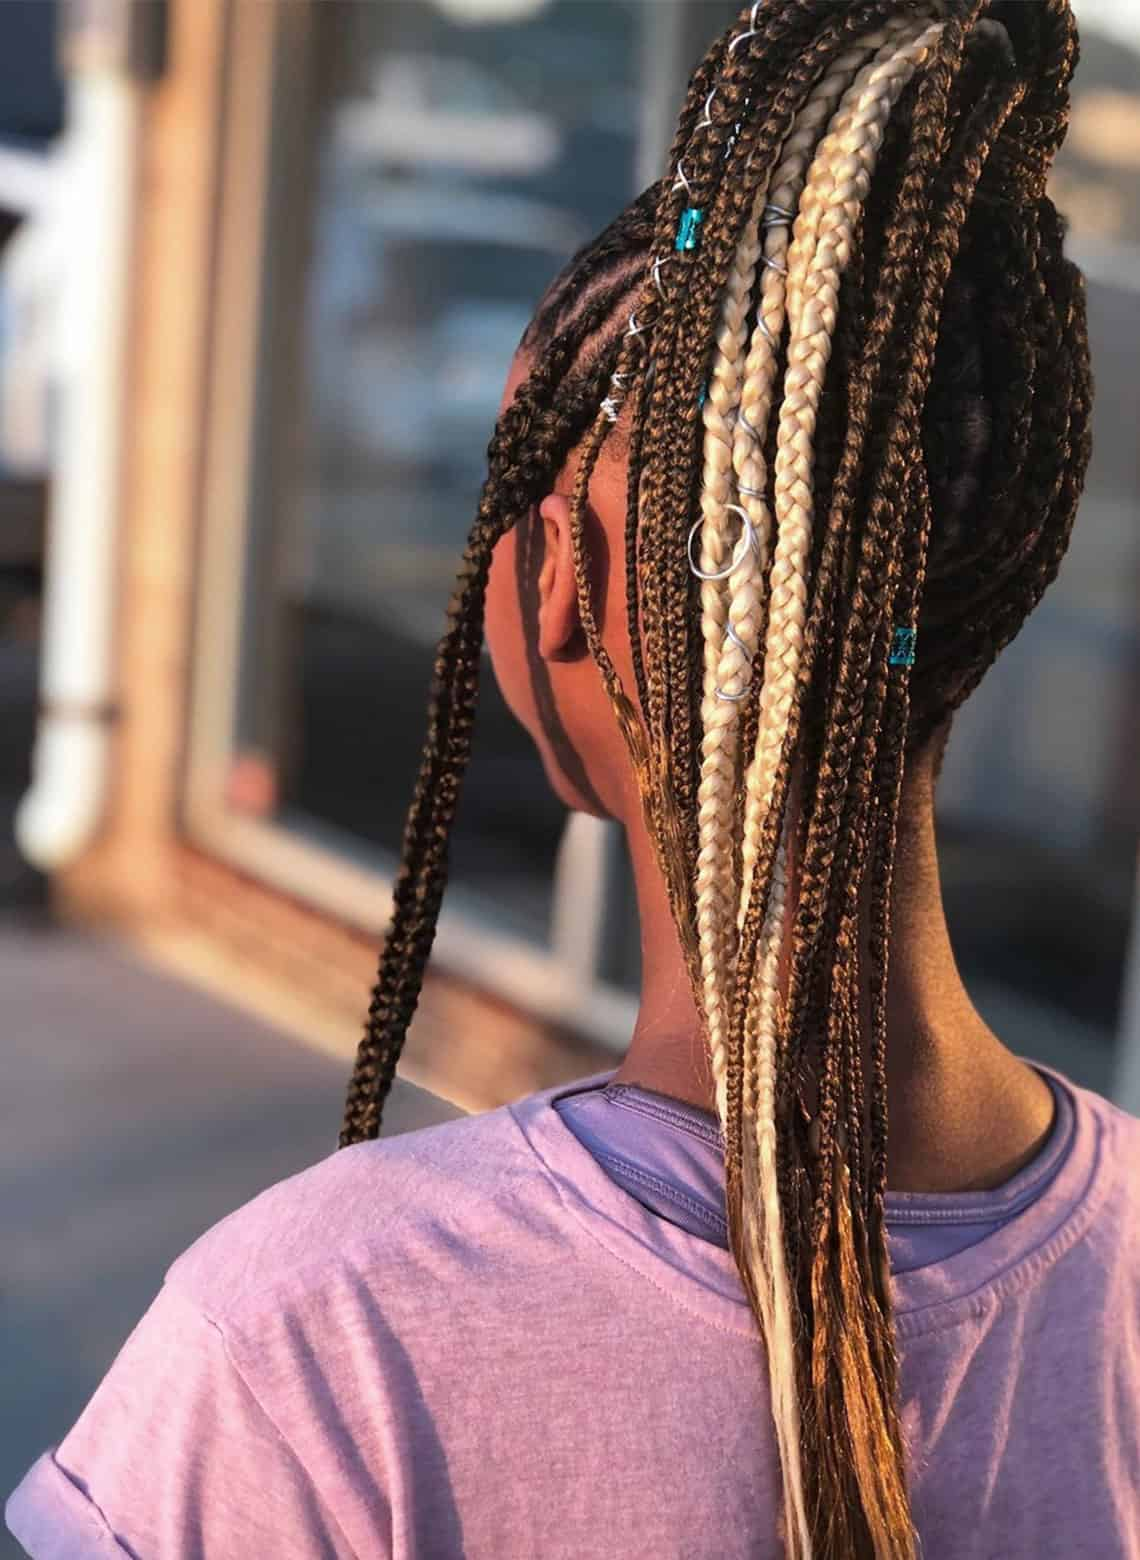 woman with accessorized braids